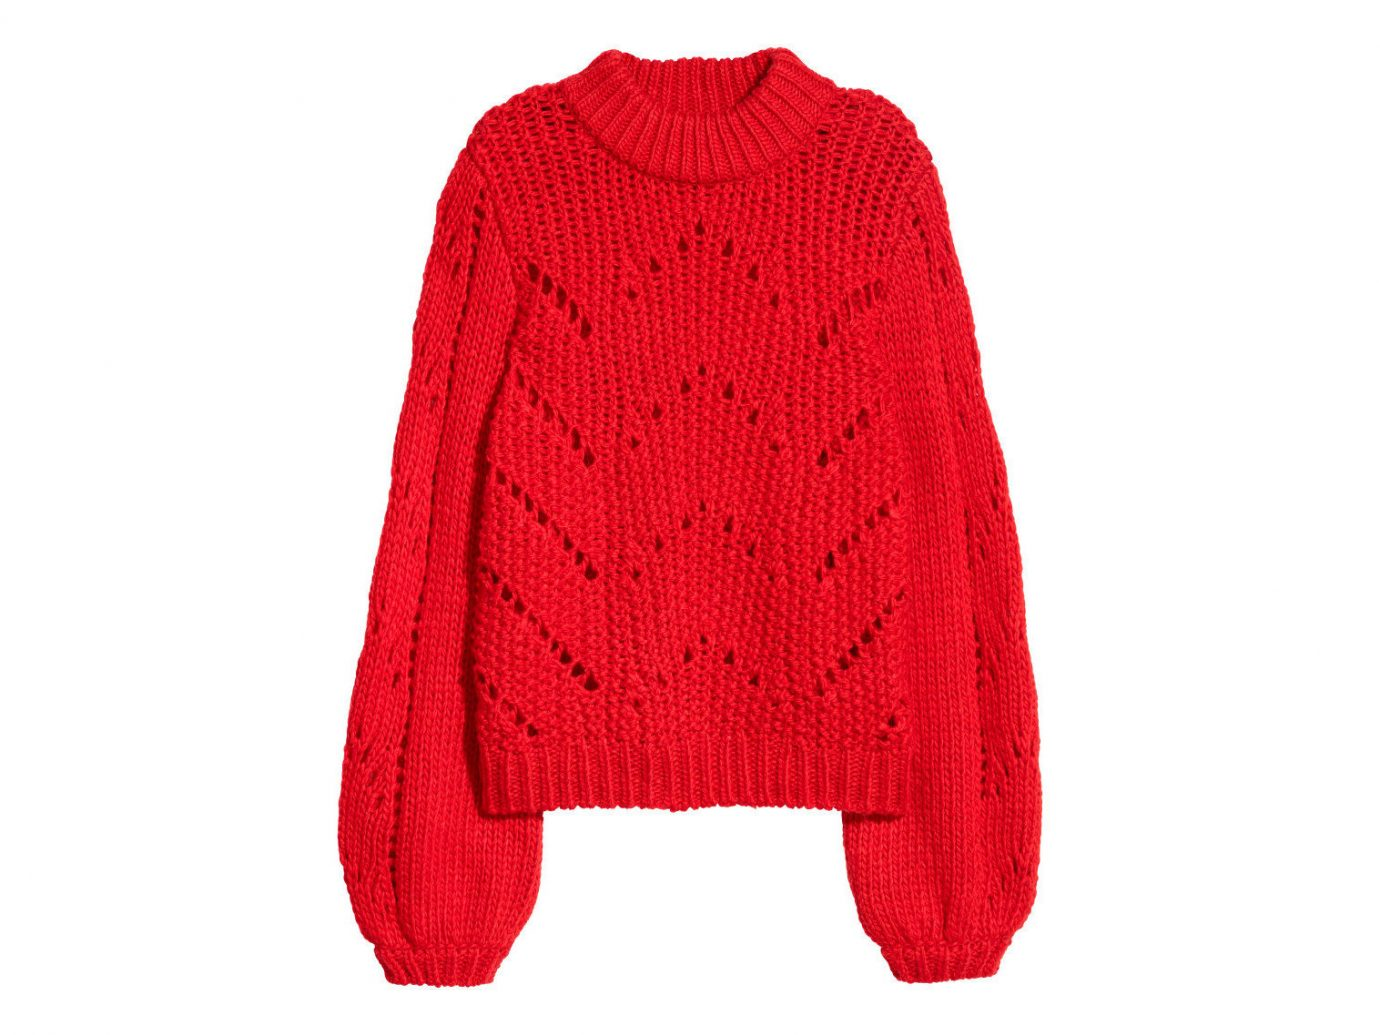 Style + Design Travel Shop clothing woolen sweater red sleeve wool neck poncho